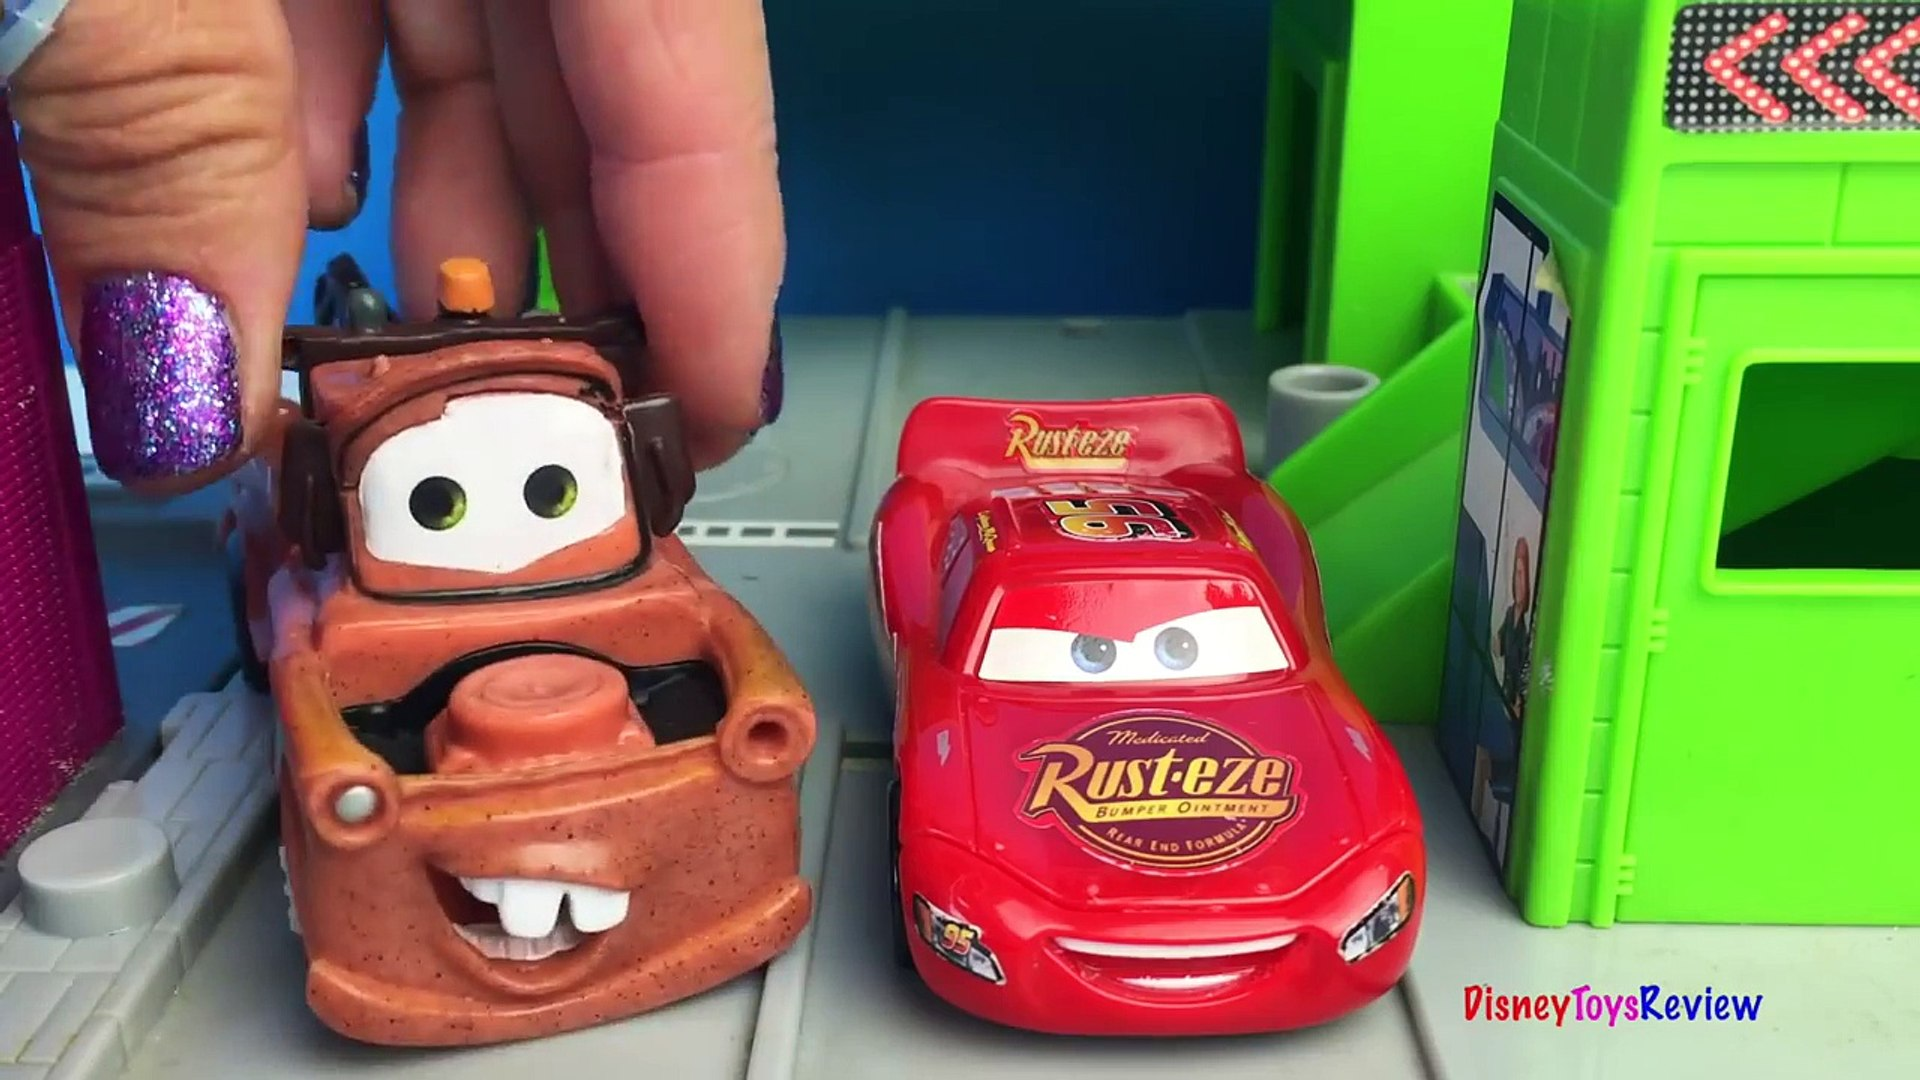 DISNEY CARS LIGHTNING MCQUEEN AND MATER AT JOBSITE TO SEE MIGHTY MACHINES DUMP TRUCKS & BULLDOZE